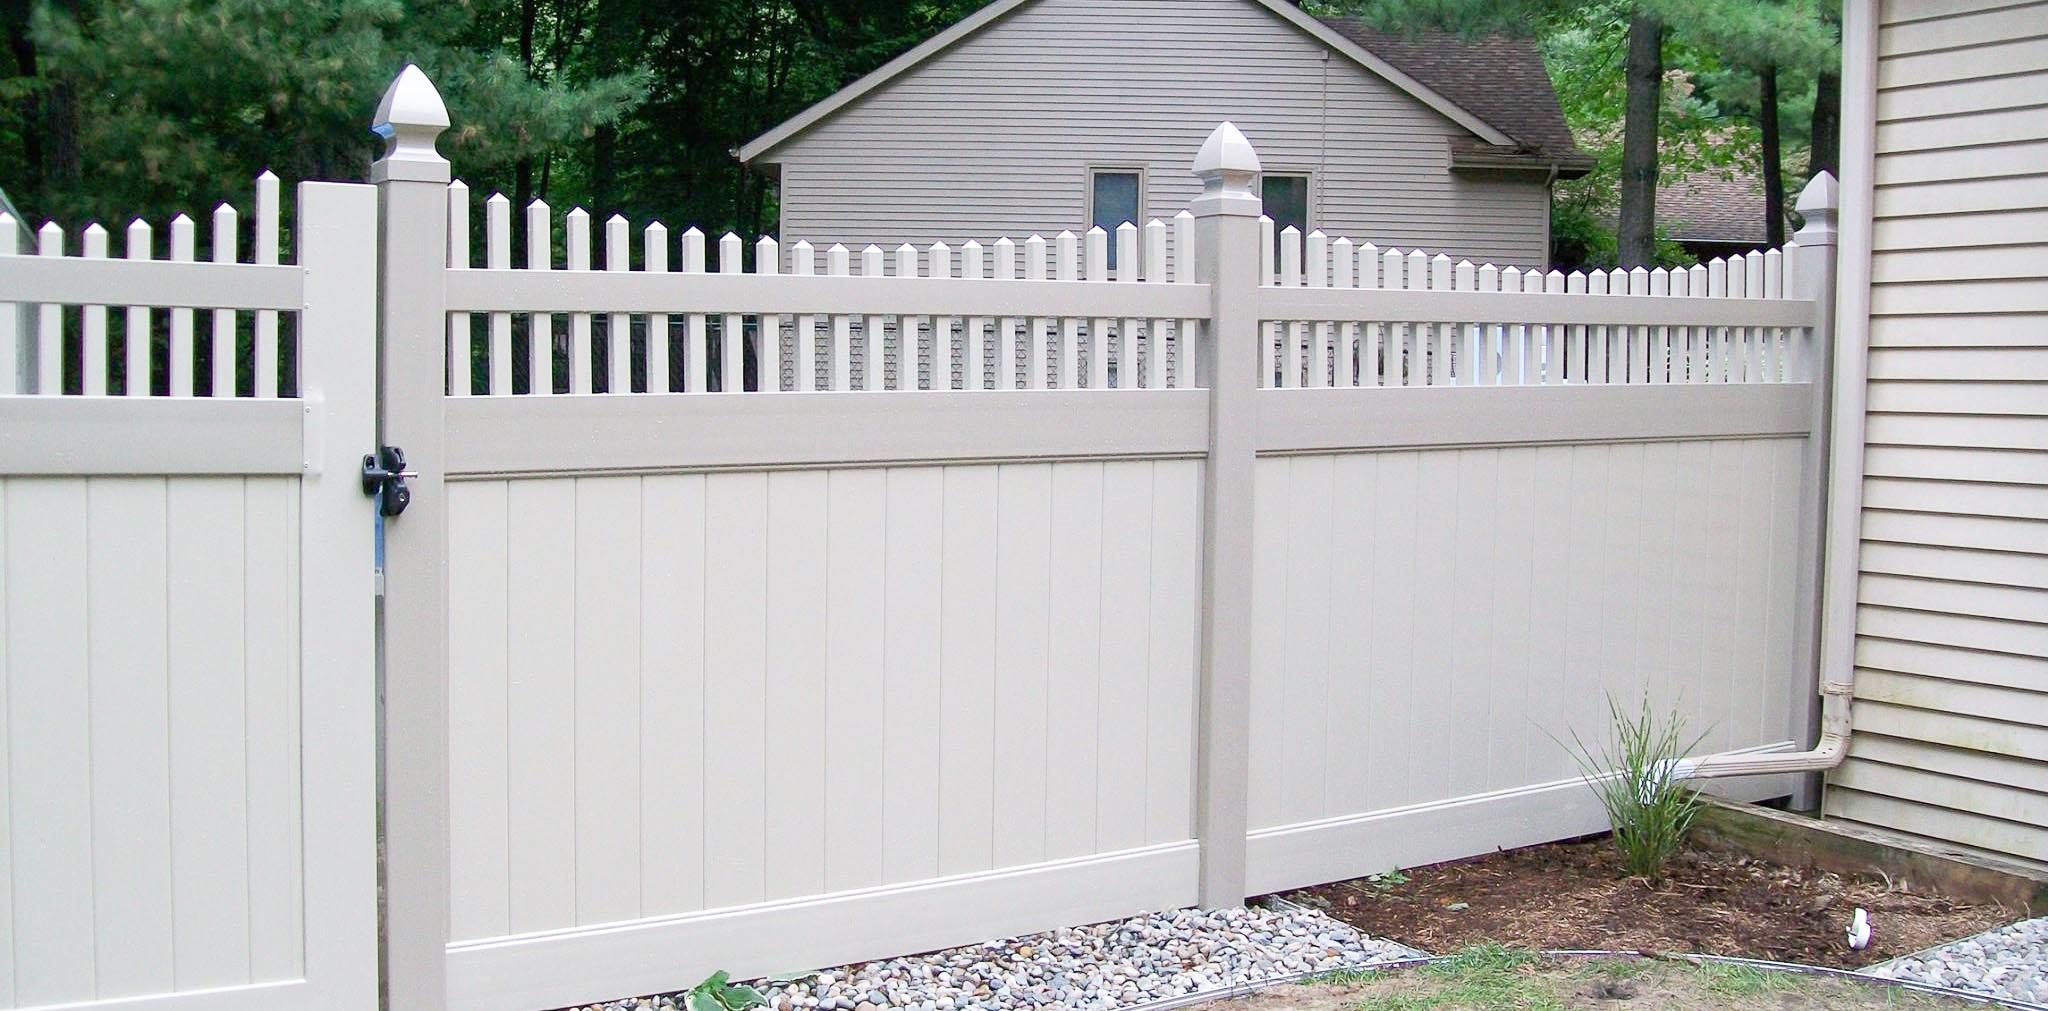 Fence Fencing Types Grand Rapids For Electricity To Flow In An Electric There Must Be A Complete Vinyl